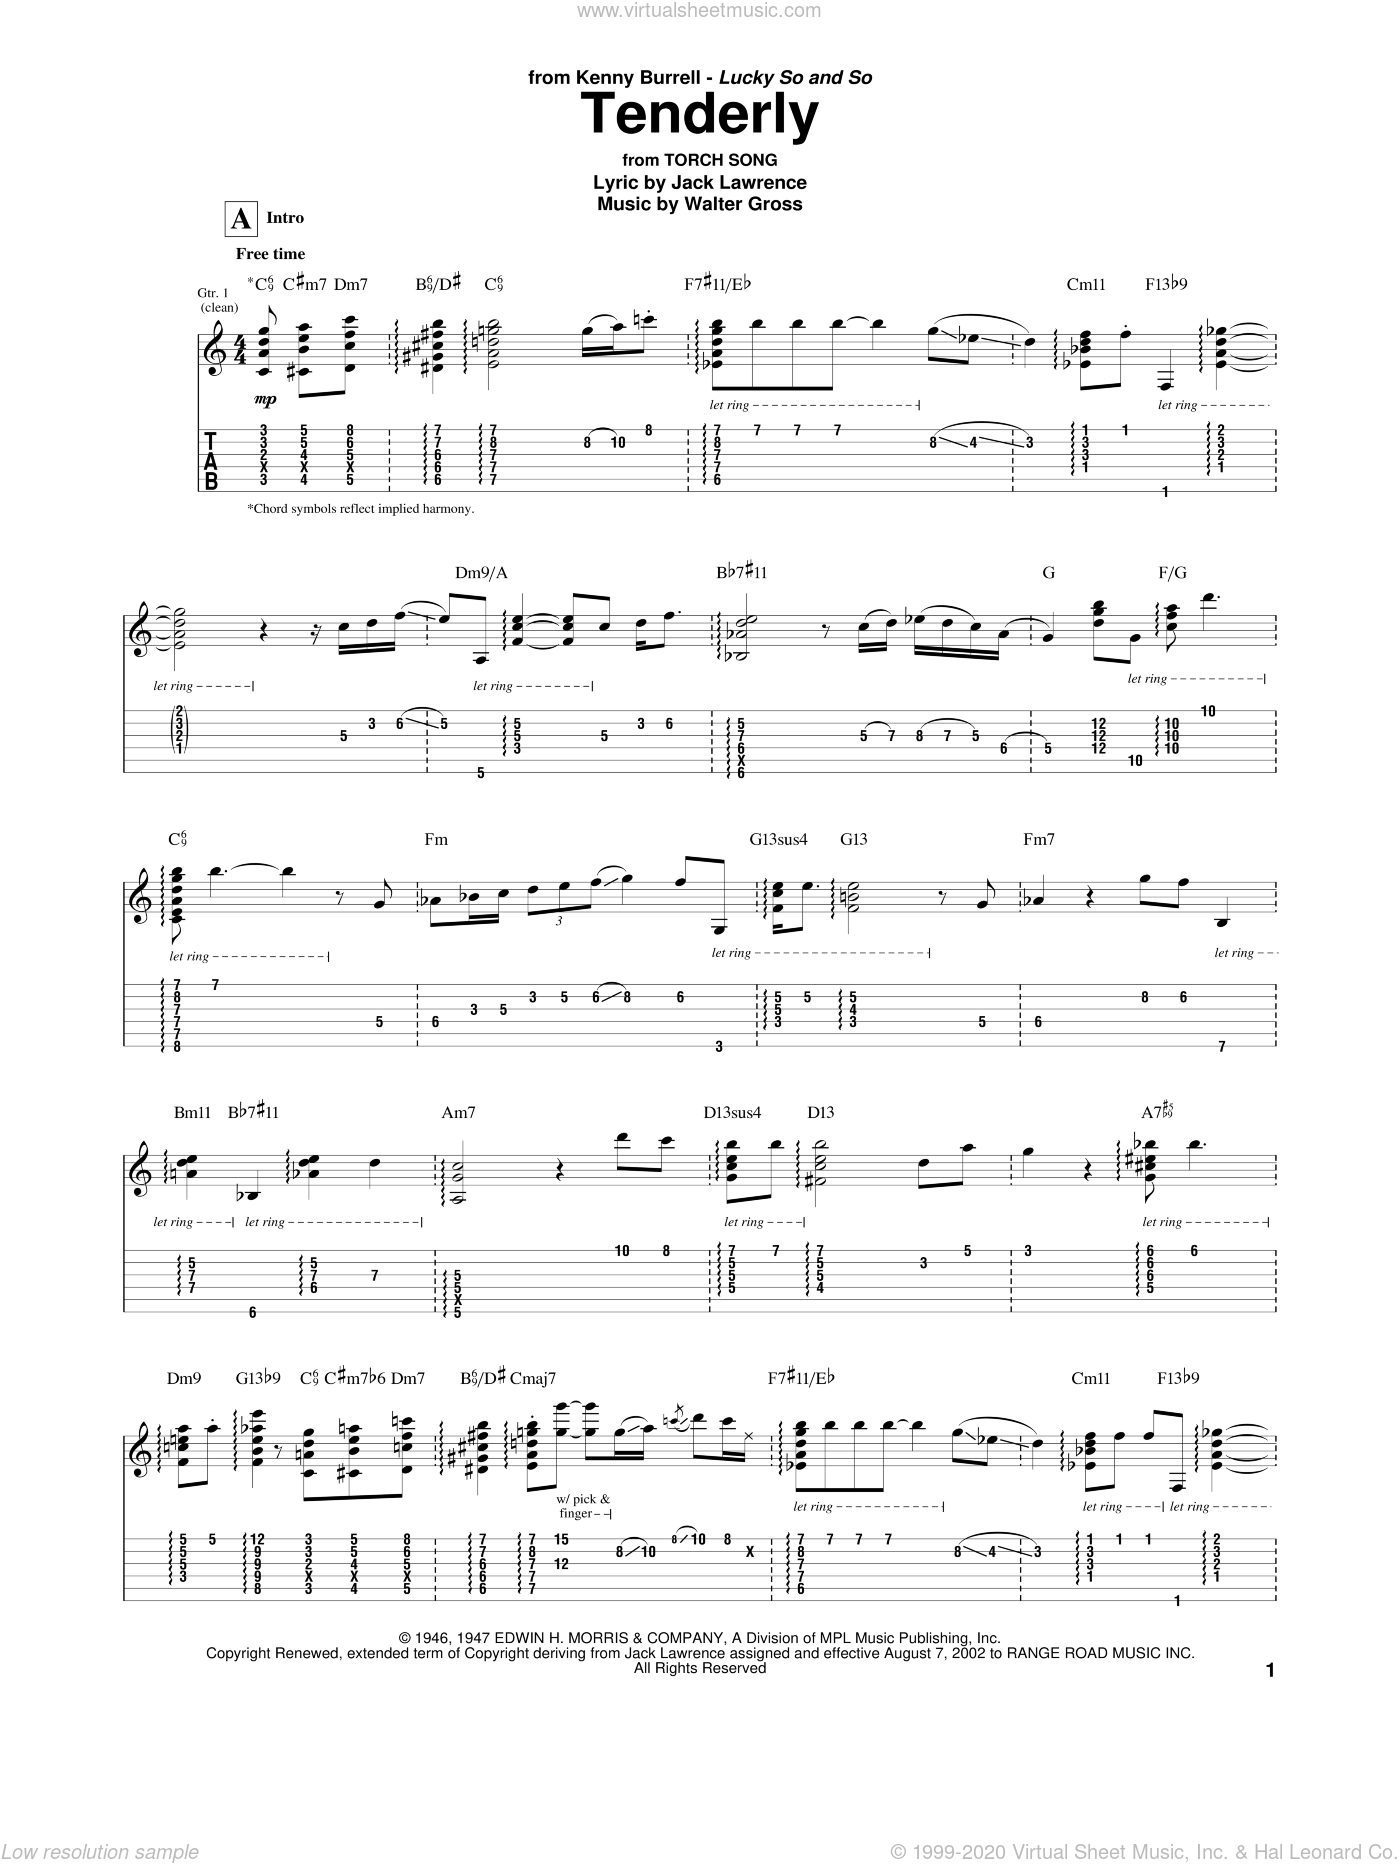 Tenderly sheet music for guitar (tablature) by Kenny Burrell, Jack Lawrence and Walter Gross, intermediate skill level